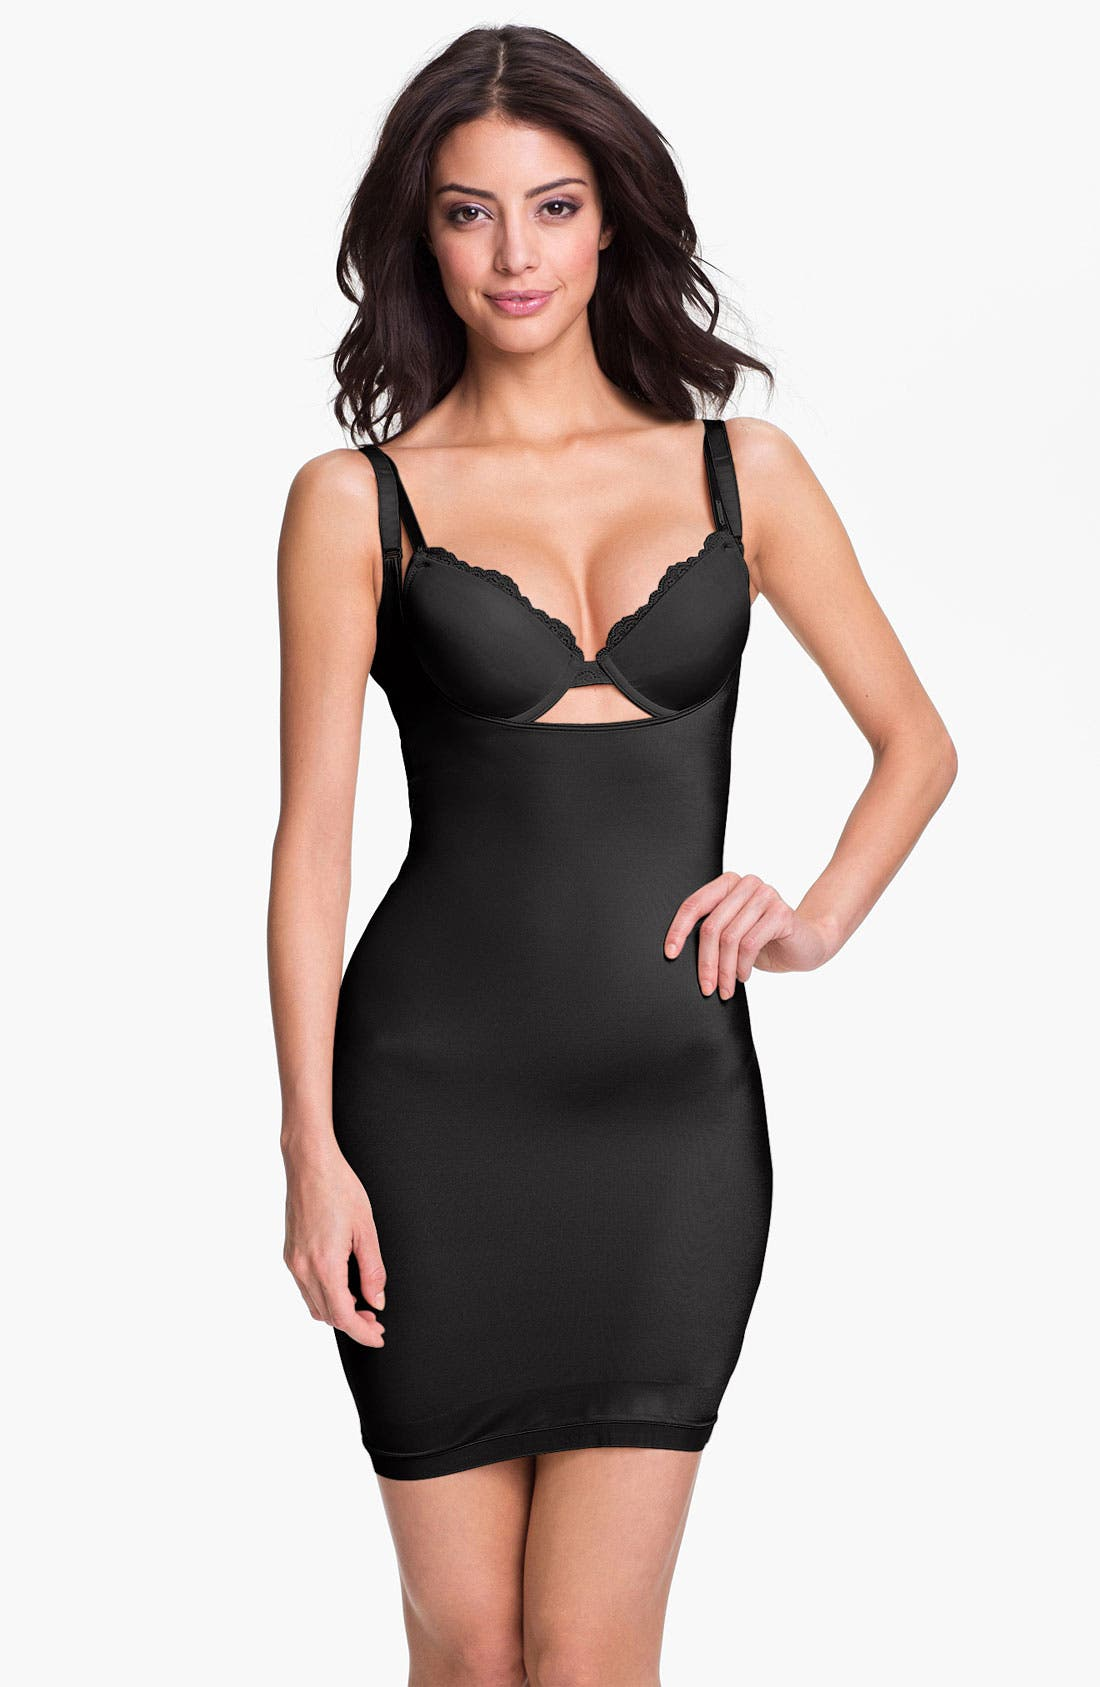 Alternate Image 1 Selected - SPANX® 'Slimplicity' Underbust Slip Shaper